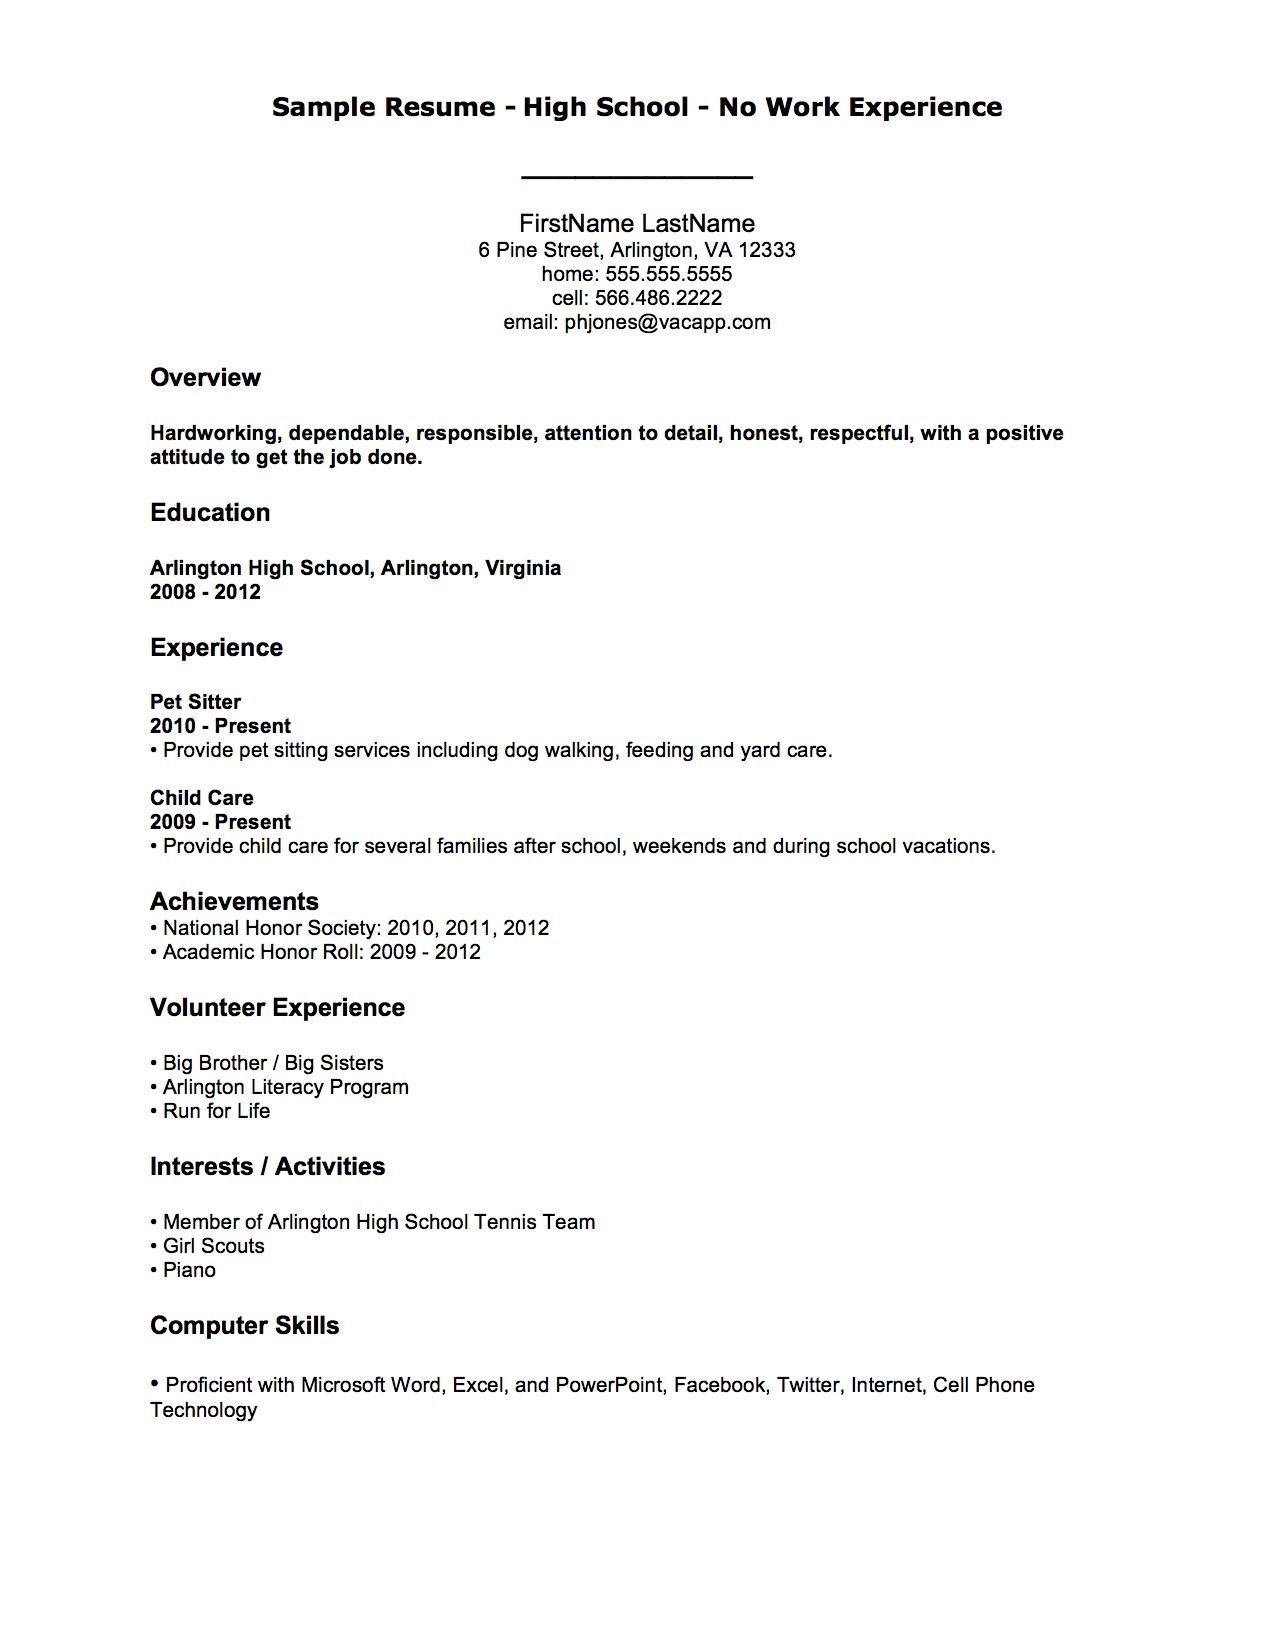 A Job Resume Sample Prepossessing Resume Examples No Job Experience  Resume Examples  Pinterest .